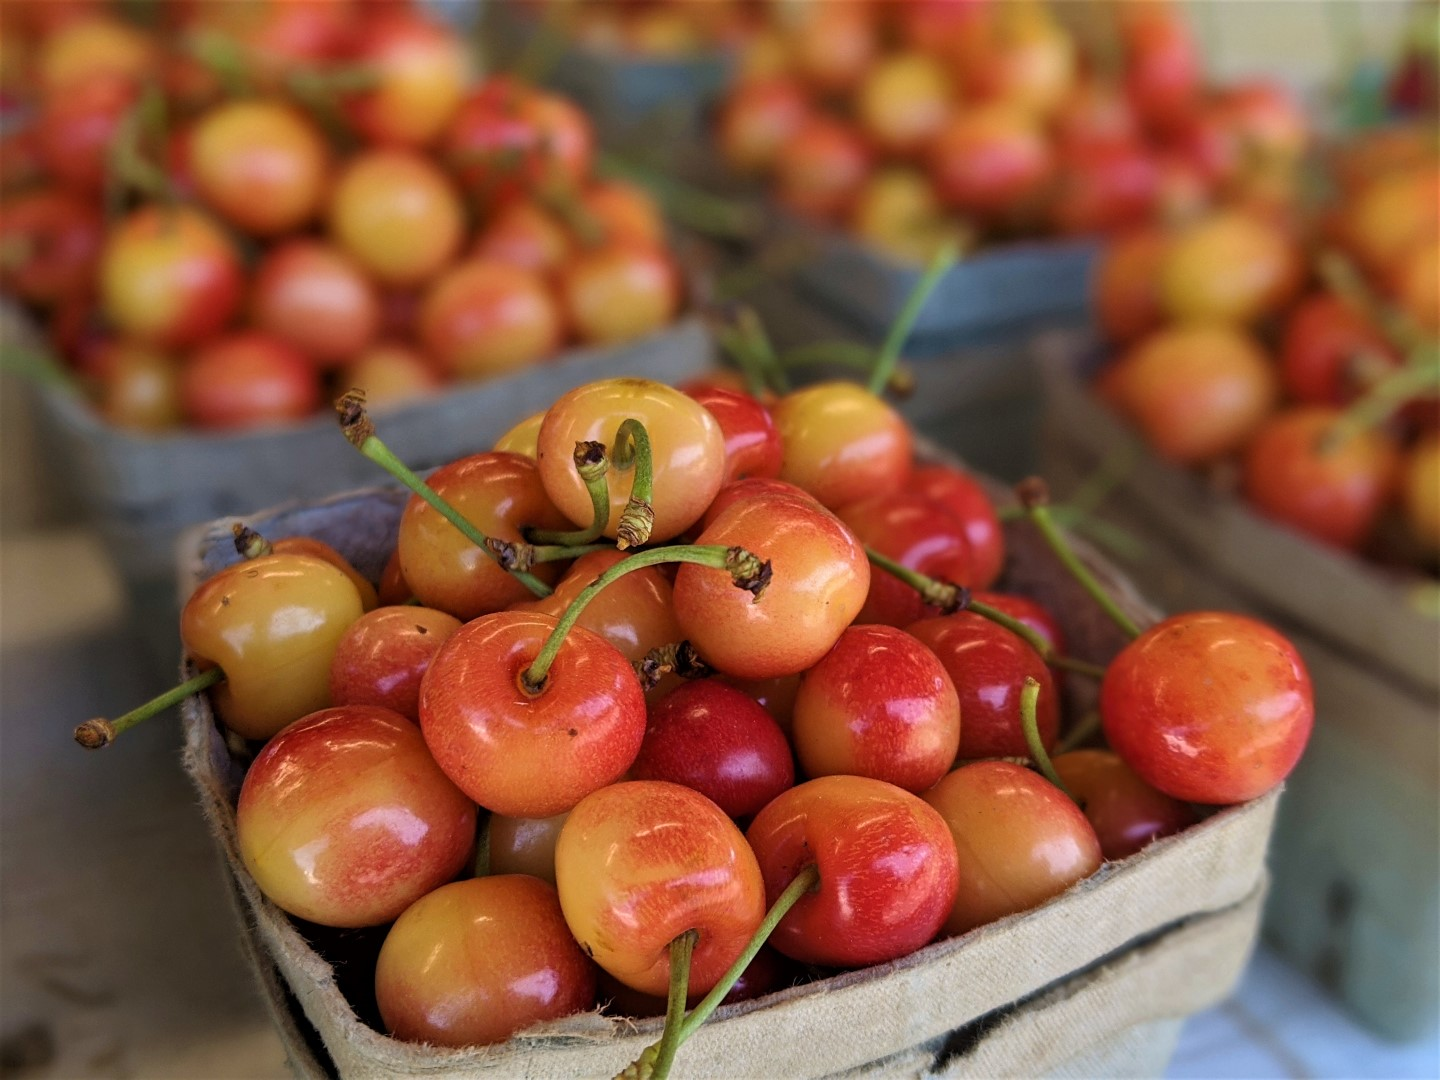 cherries from the farm in Niagara on the Lake